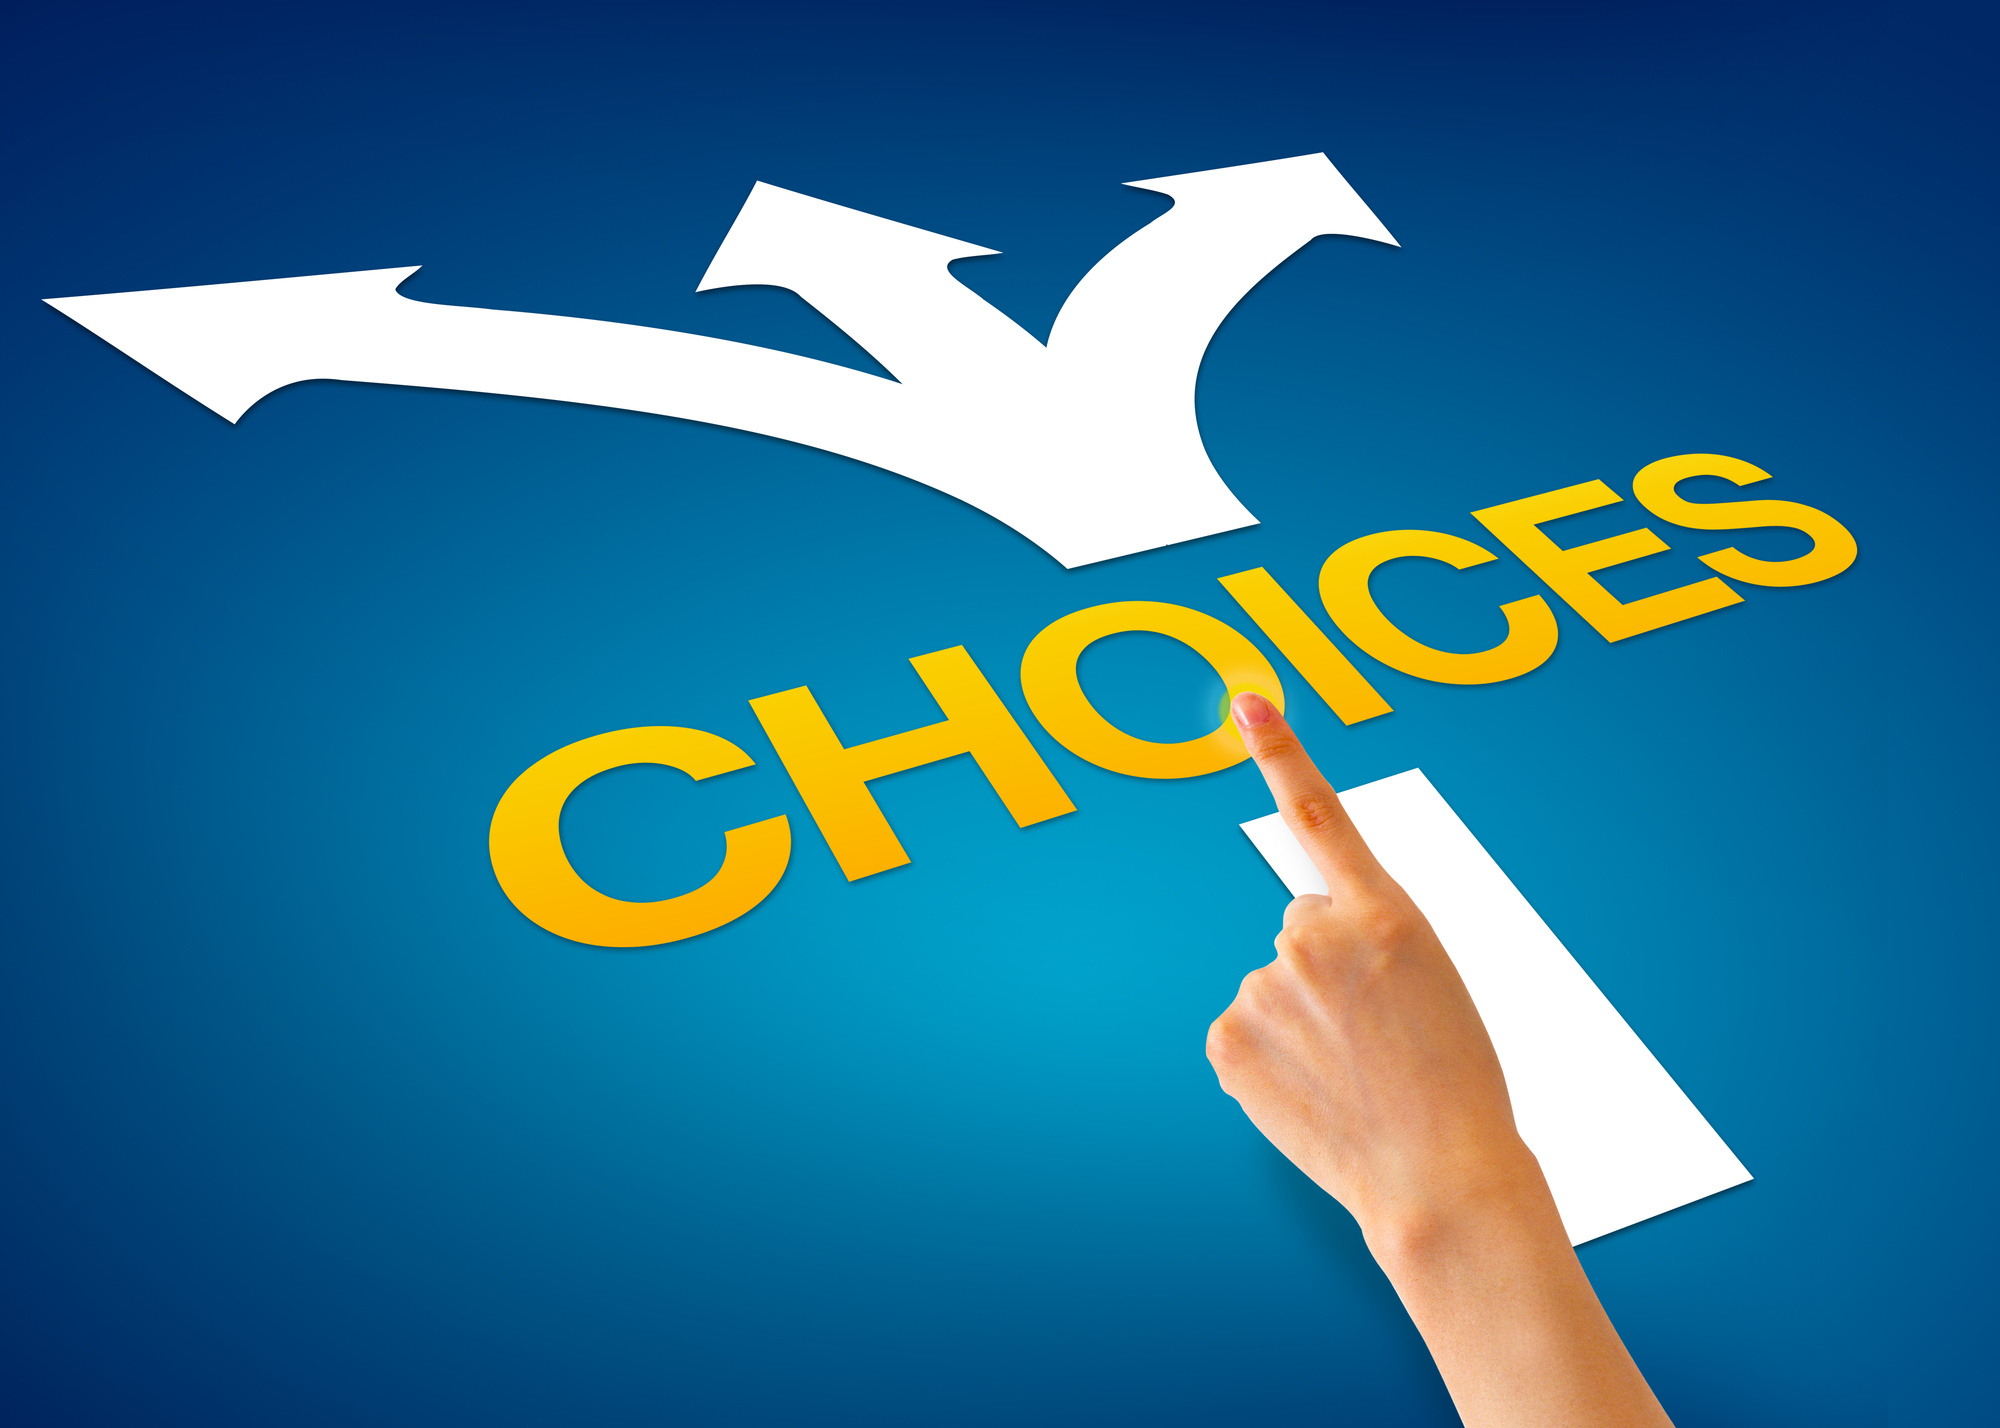 Image result for choices: What do you do? What do you decide? Free to use, share and modify image from Bing search.